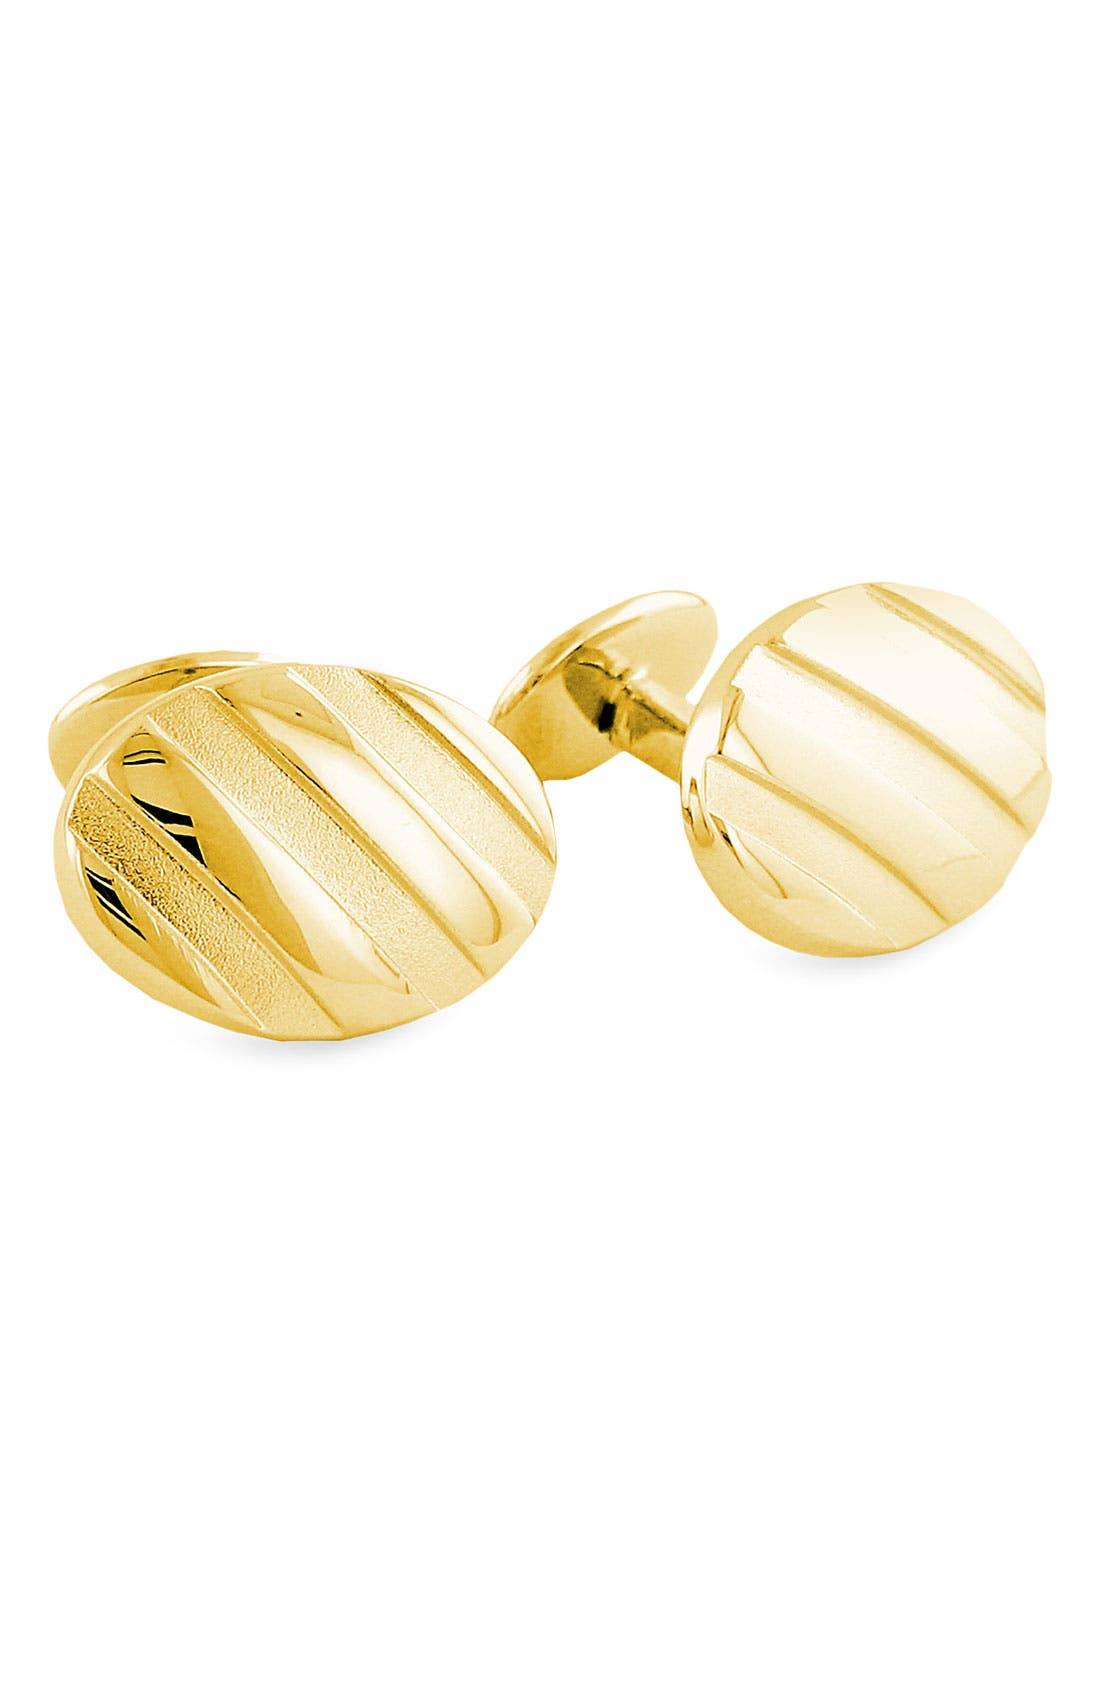 Alternate Image 1 Selected - David Donahue Textured Cuff Links